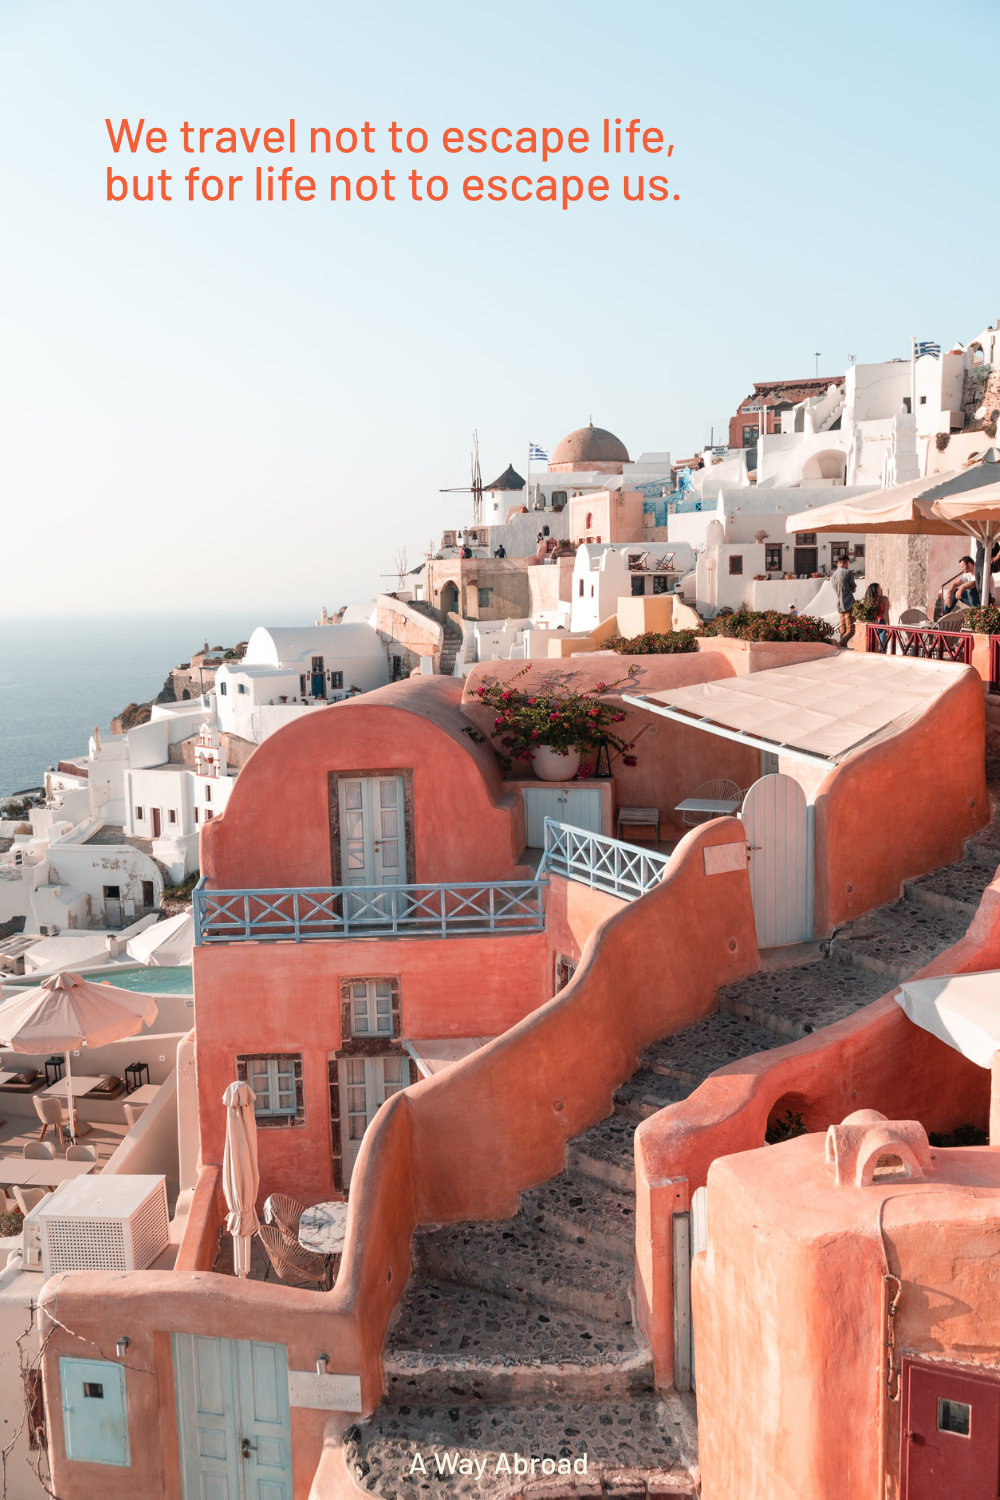 peach-santorini-views-with-travel-quote-a-way-abroad